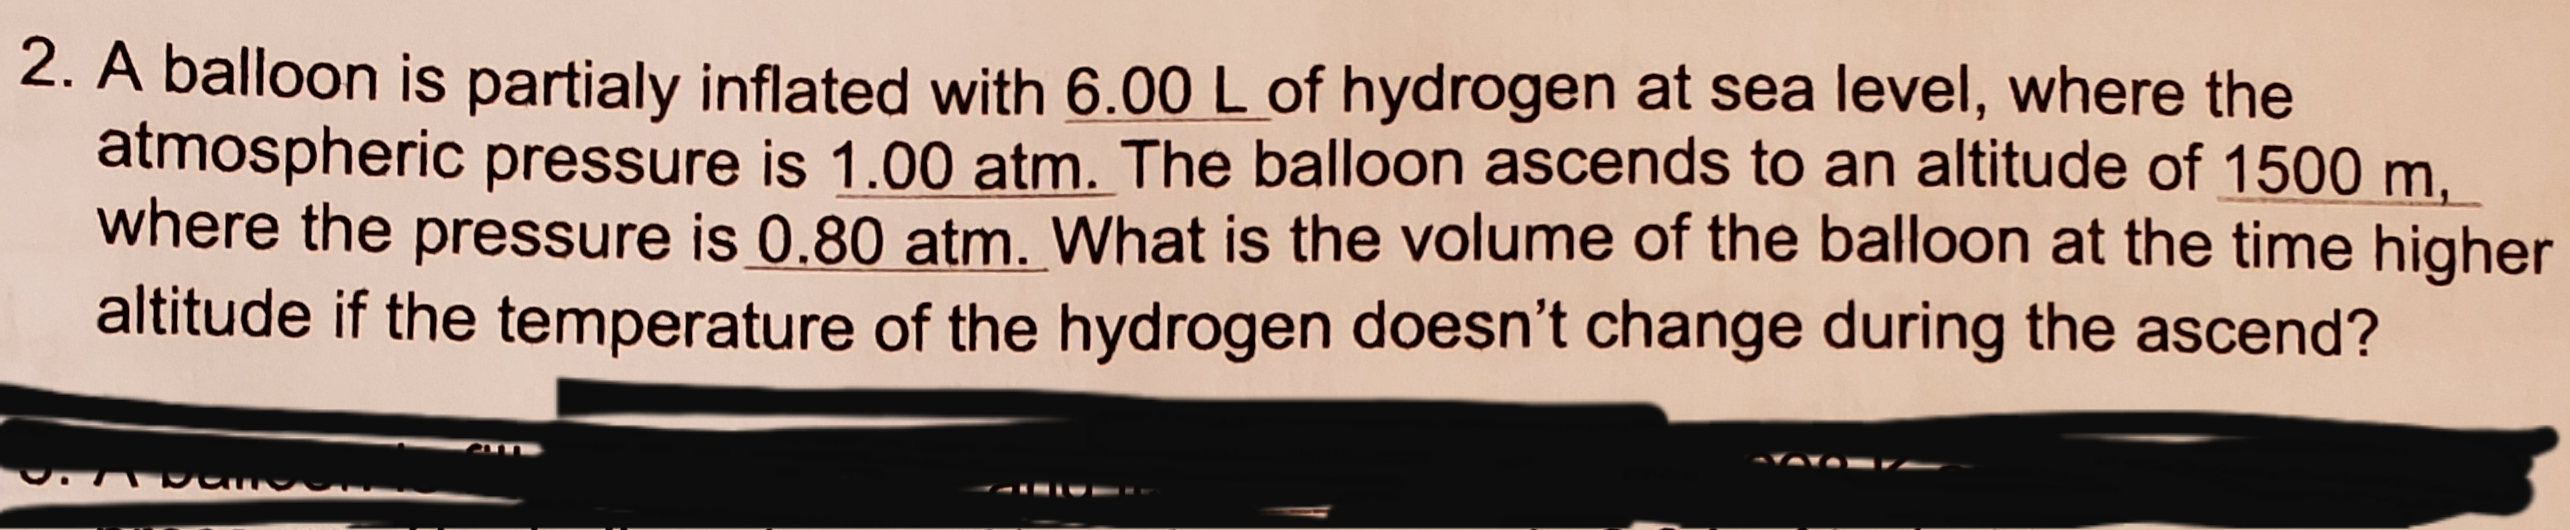 2. A balloon is partialy inflated with 6.00 L of hydrogen at sea level, where the atmospheric pressure is 1.00 atm. The balloon ascends to an altitude of 1500 m where the pressure is 0.80 atm. What is the volume of the balloon at the time higher altitude if the temperature of the hydrogen does n't change during the ascend?